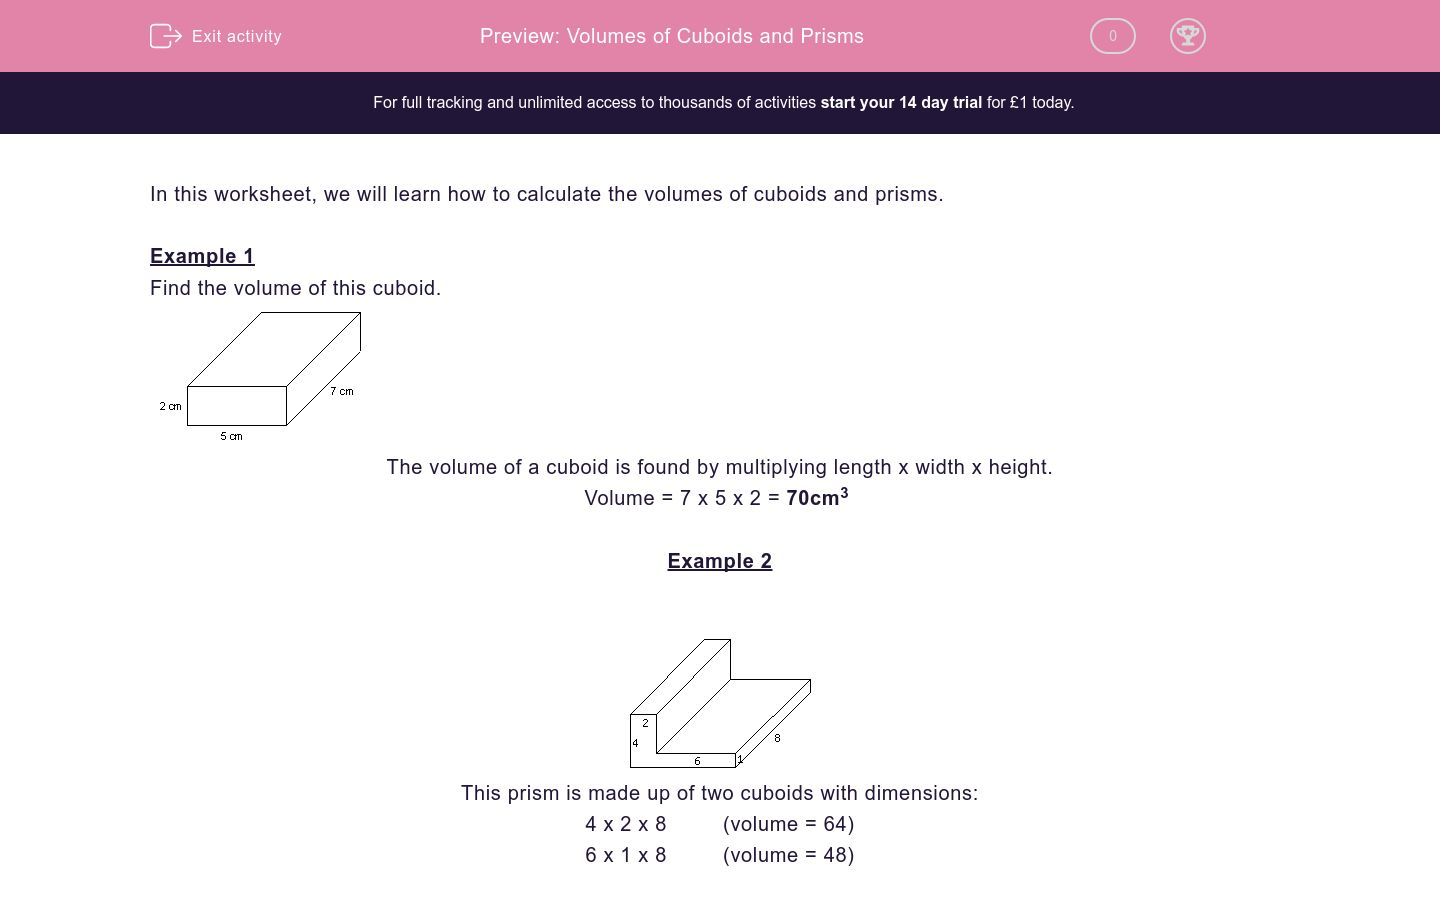 'Volumes of Cuboids and Prisms' worksheet